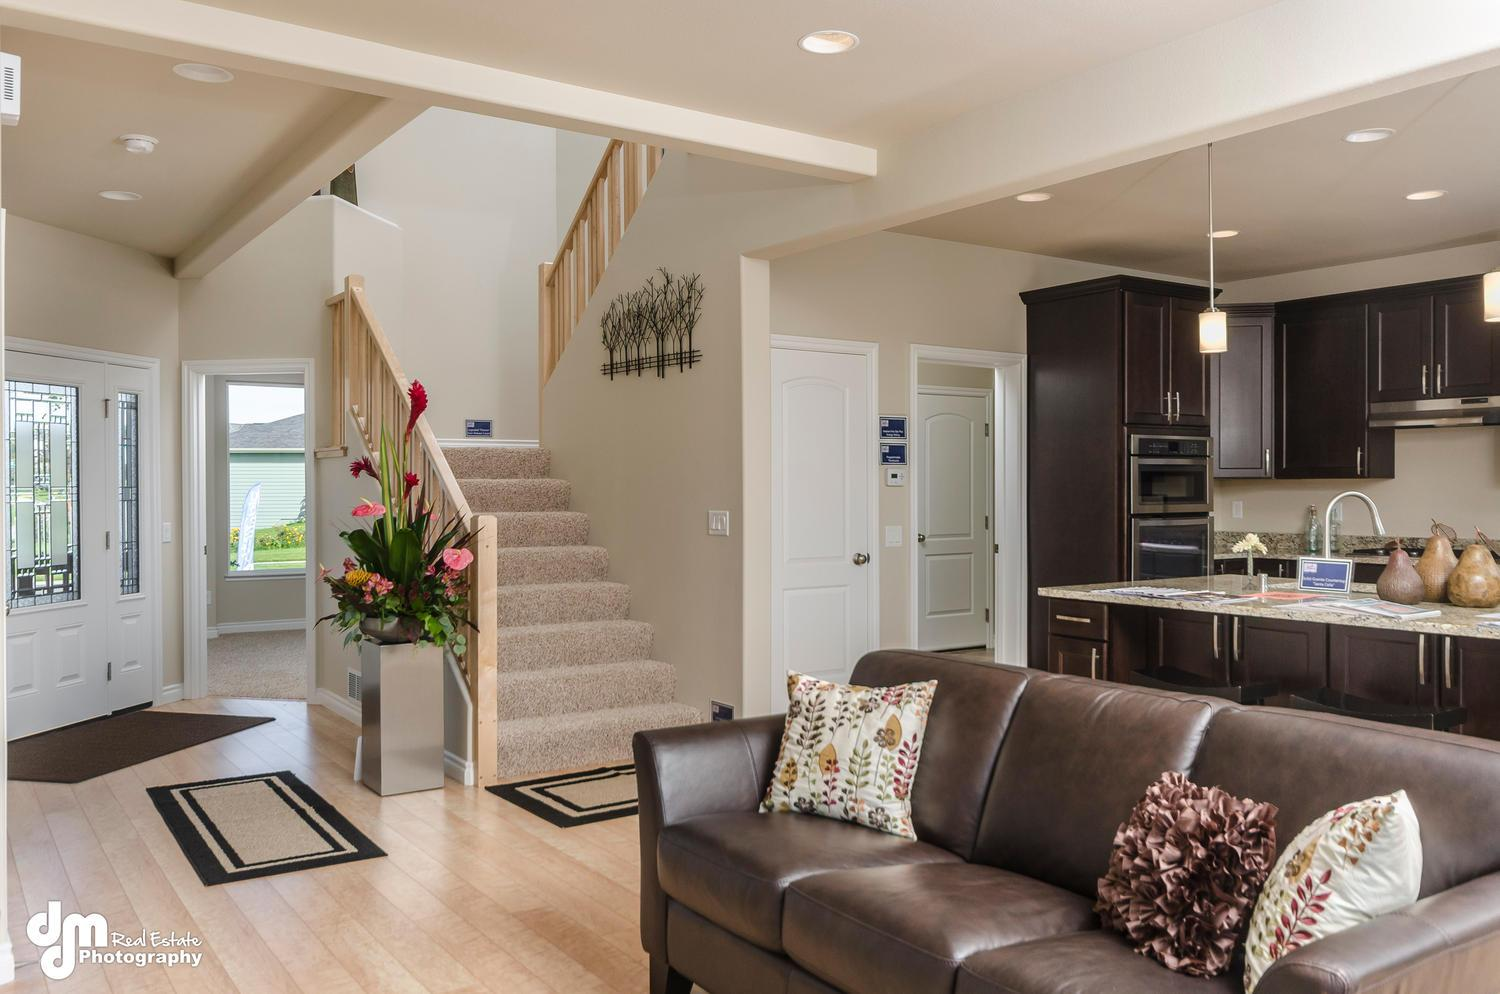 Living Area featured in the St Elias 2335 By Spinell Homes in Anchorage, AK